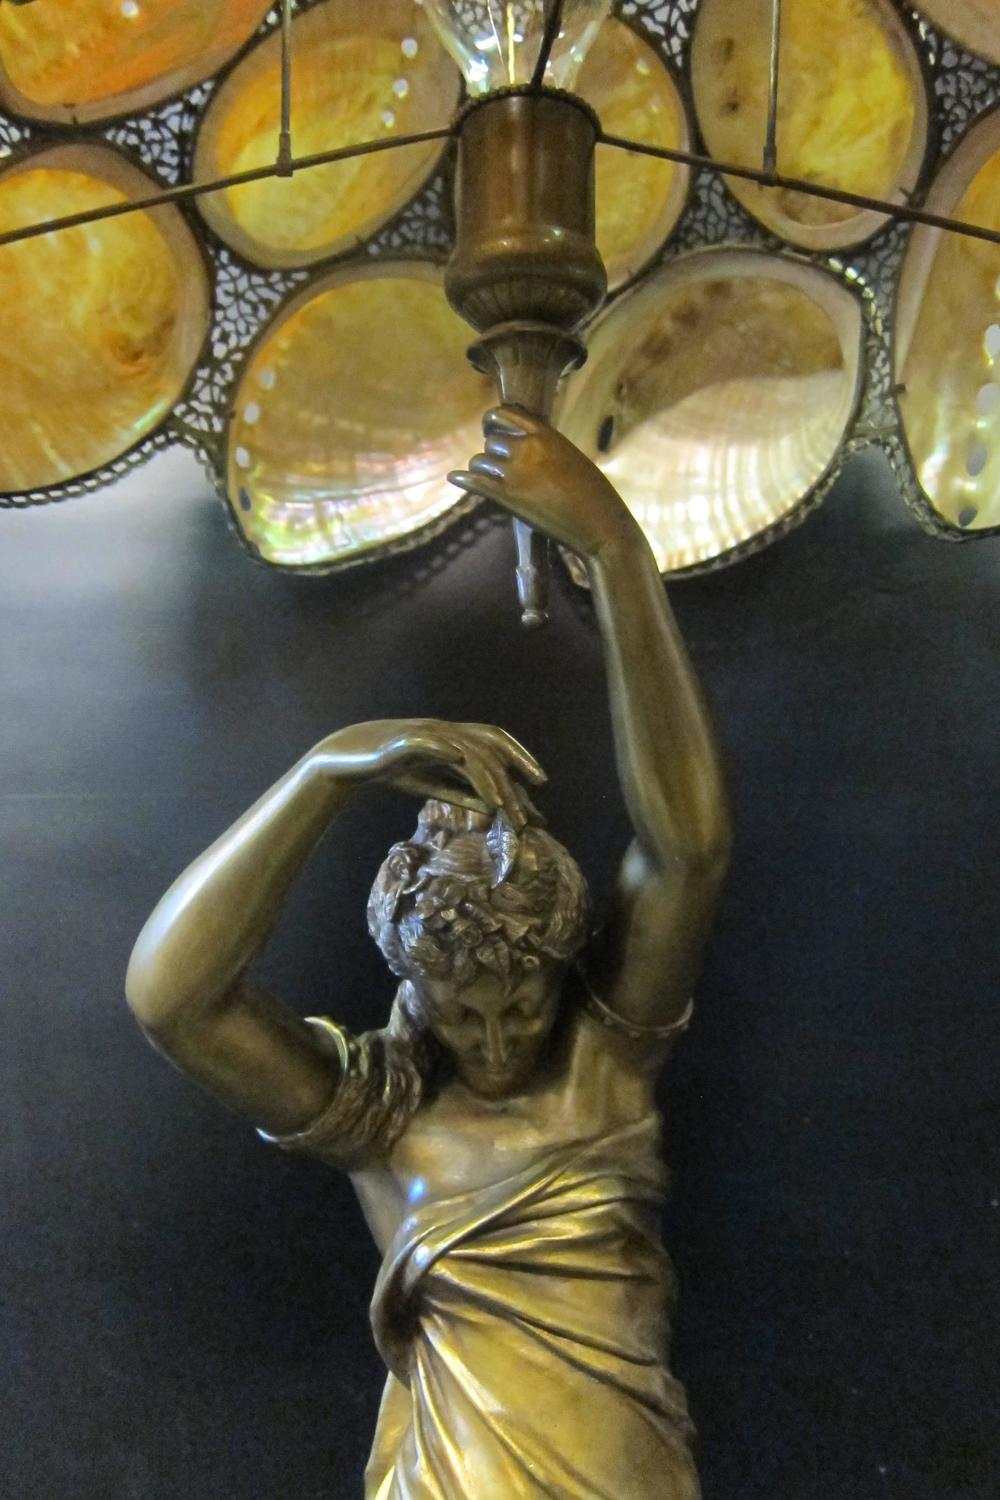 Vintage Art Nouveau Table Lamp With Mother Of Pearl Shades